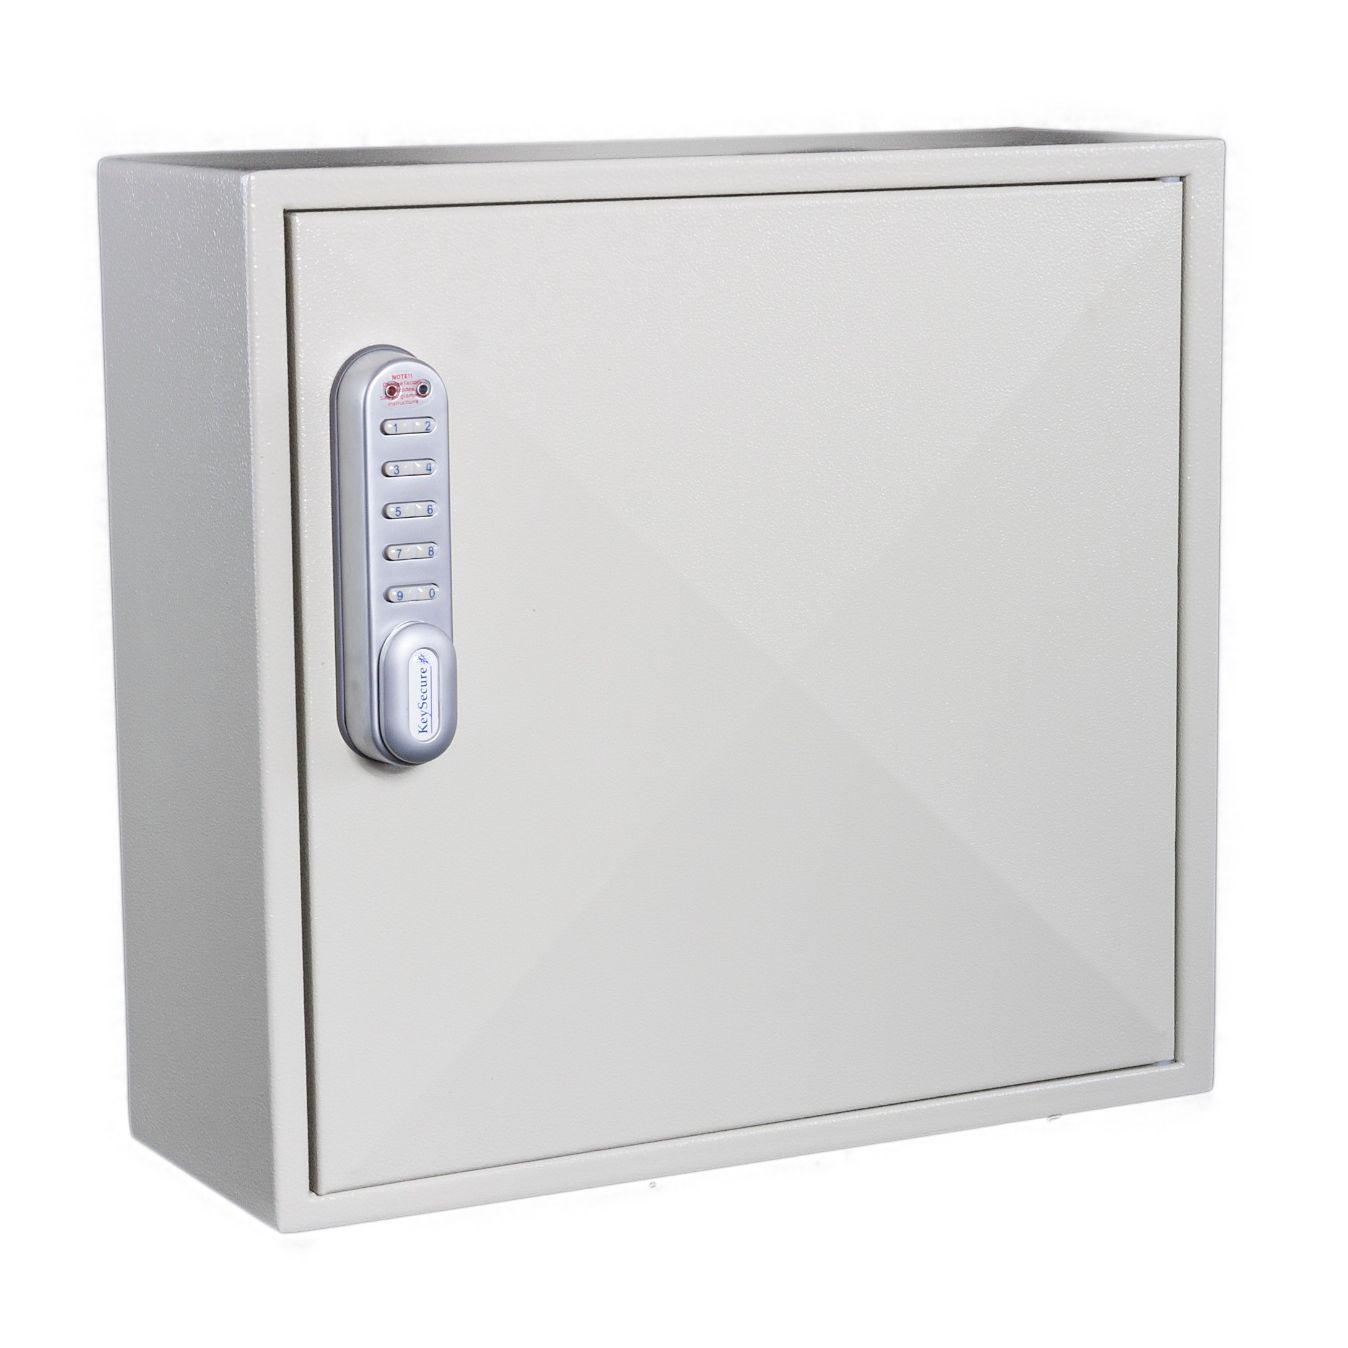 high_capacity_key_cabinets_with_electronic_cam_lock_25_hook_closed.jpg